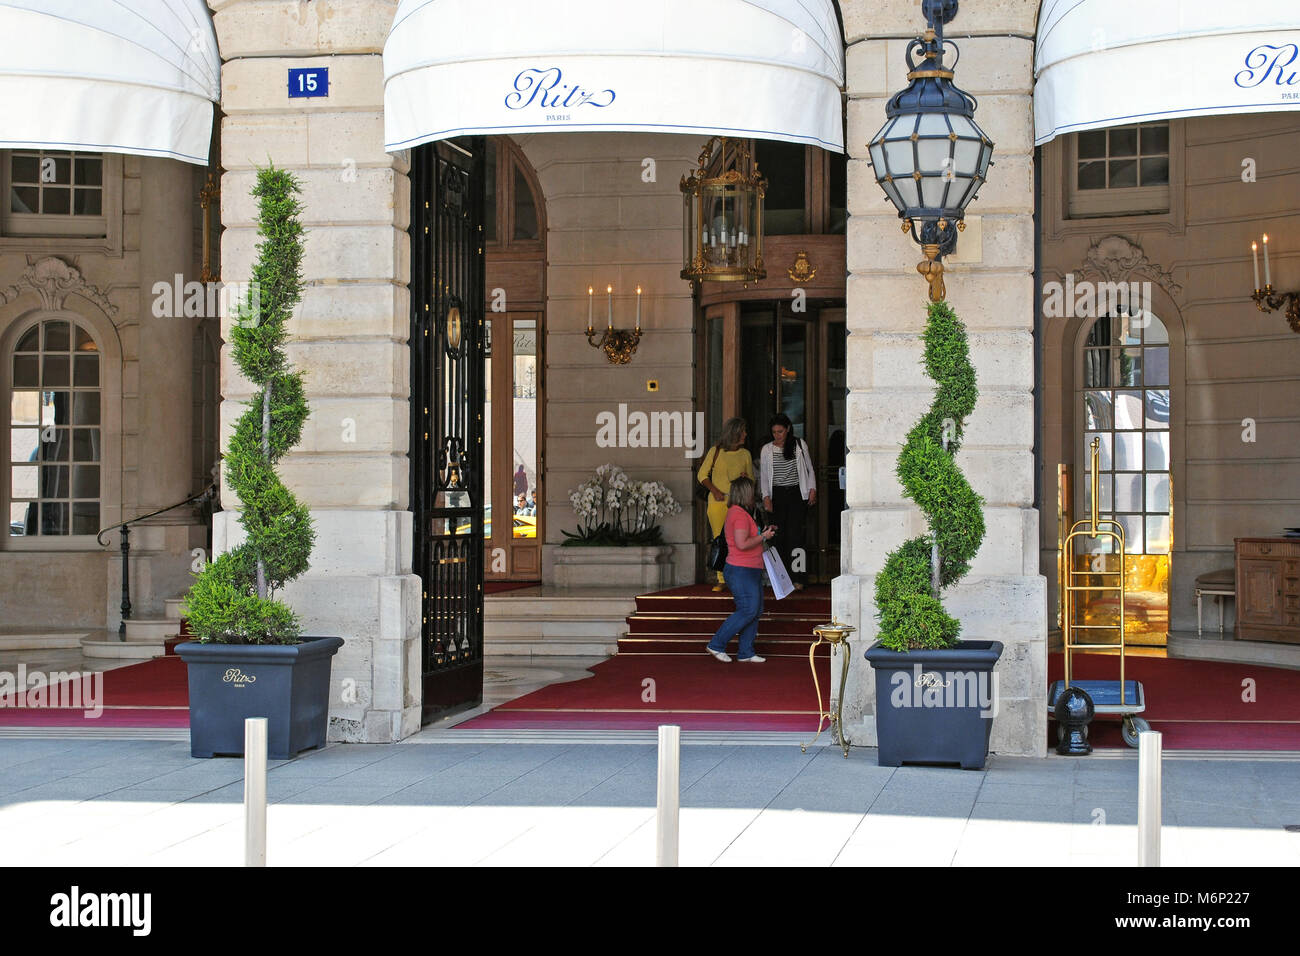 Paris, France, June 22: The facade of the Ritz hotel with the front door and the red carpet, June 22, 2012 in Paris. - Stock Image